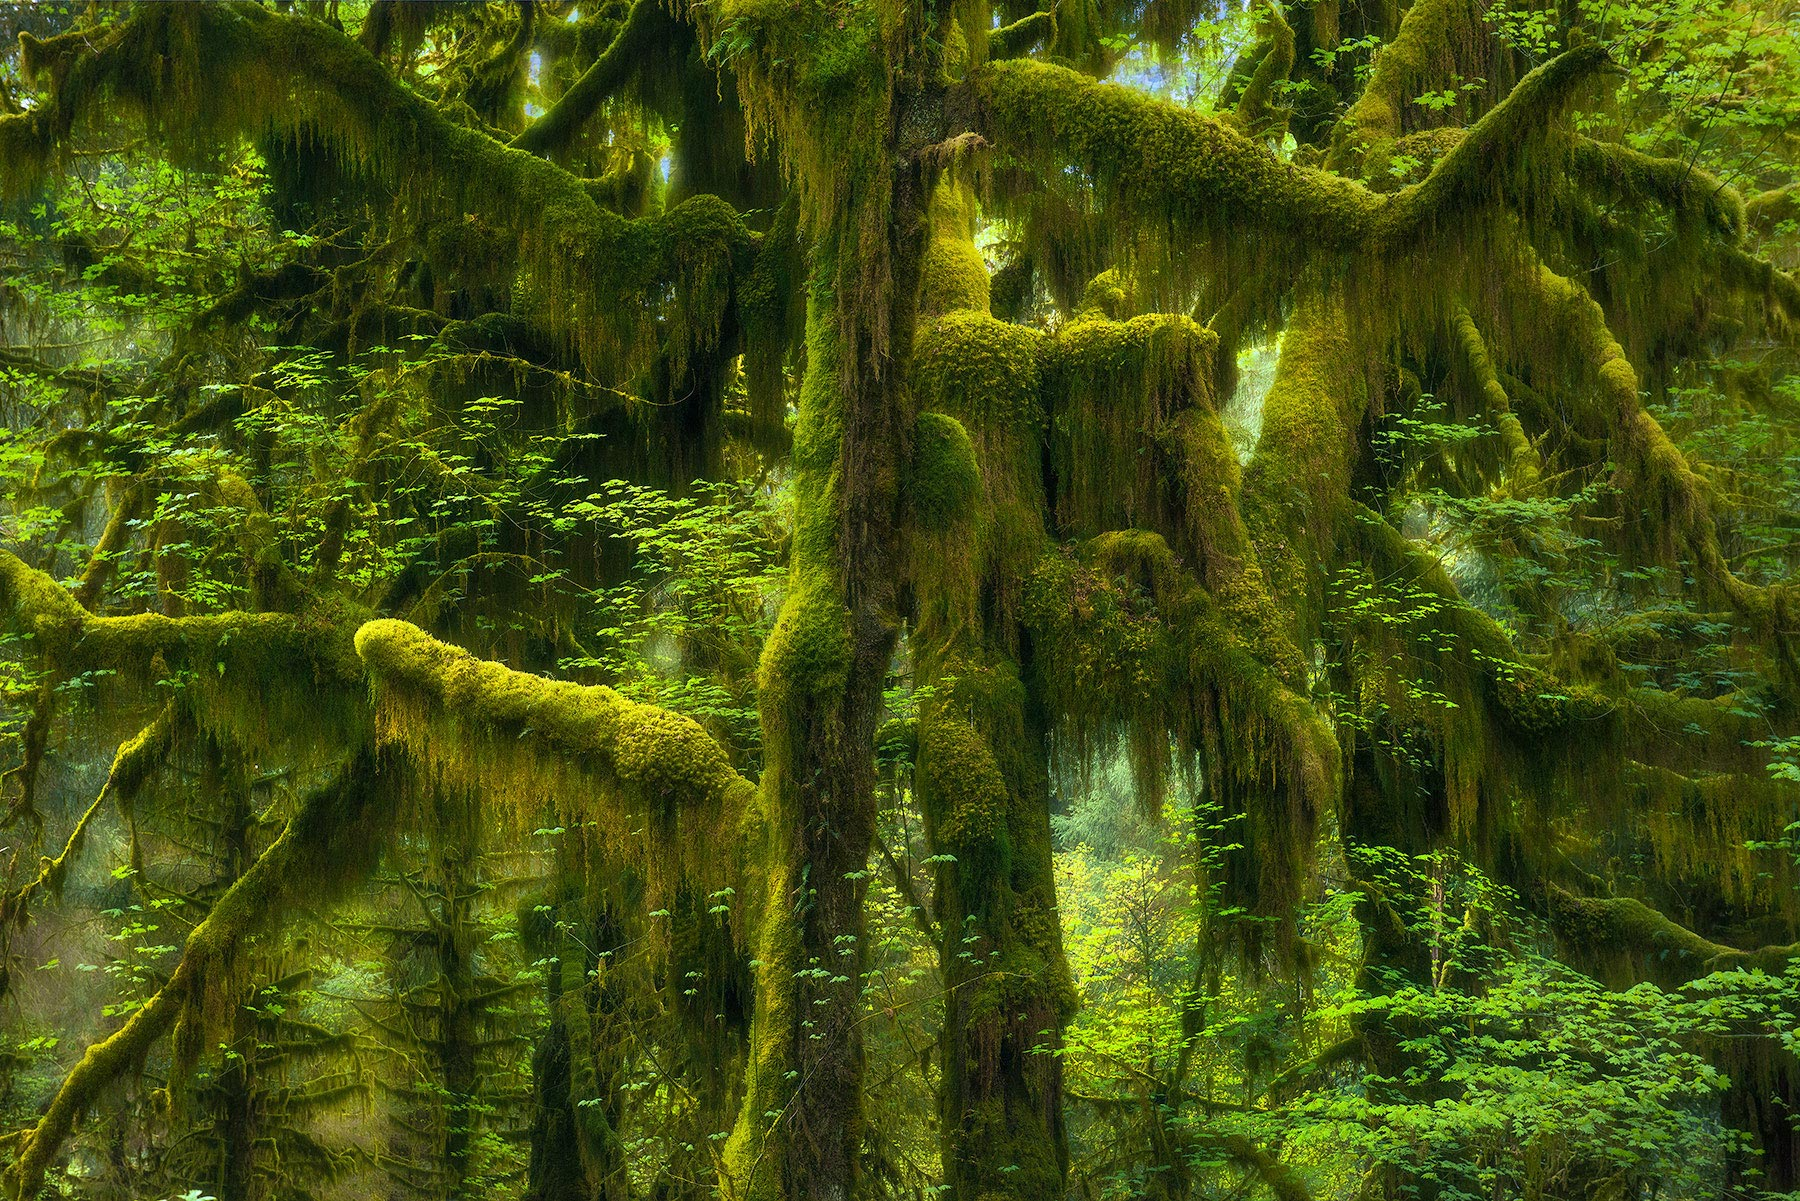 Soft light in showing off the mossy forests of the Hoh, in Olympic National Park, Washington.